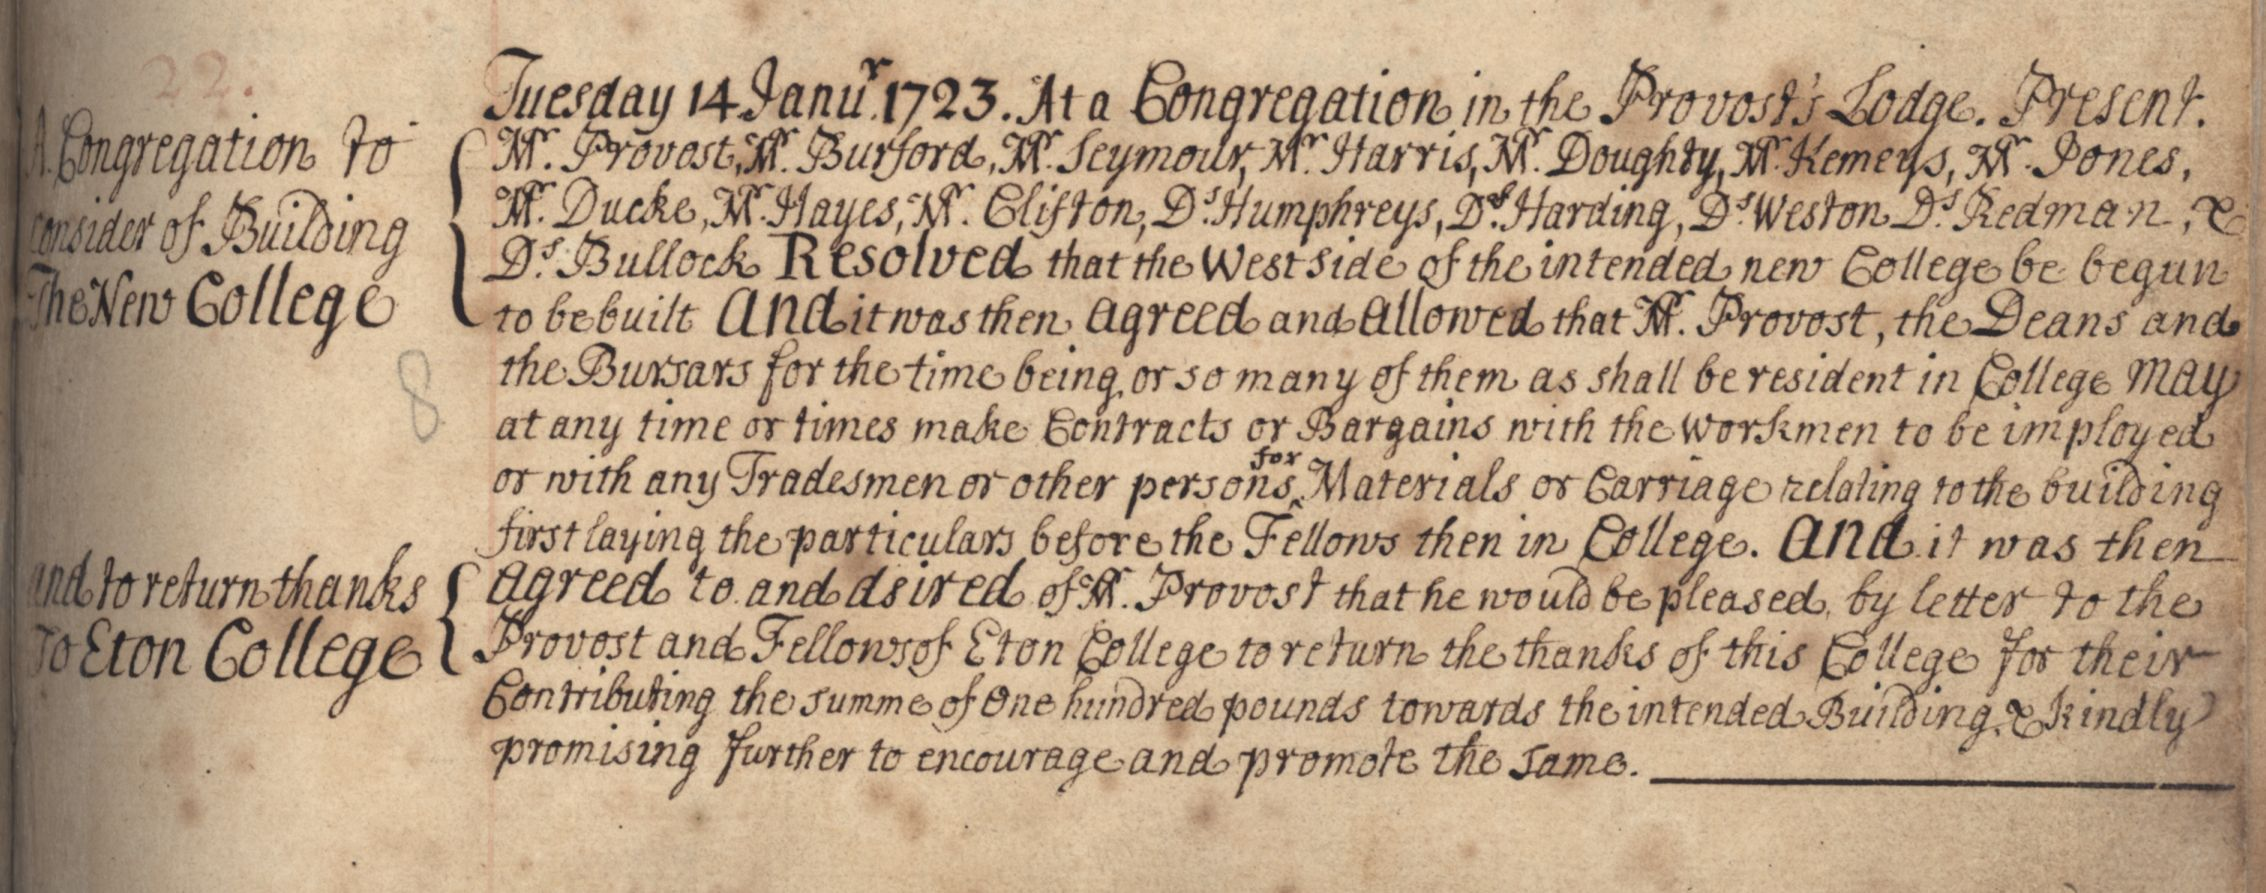 Minute of the Congregation's decision to allow building works to commence, 14 January 1723. [KCGB/4/1/1/1]